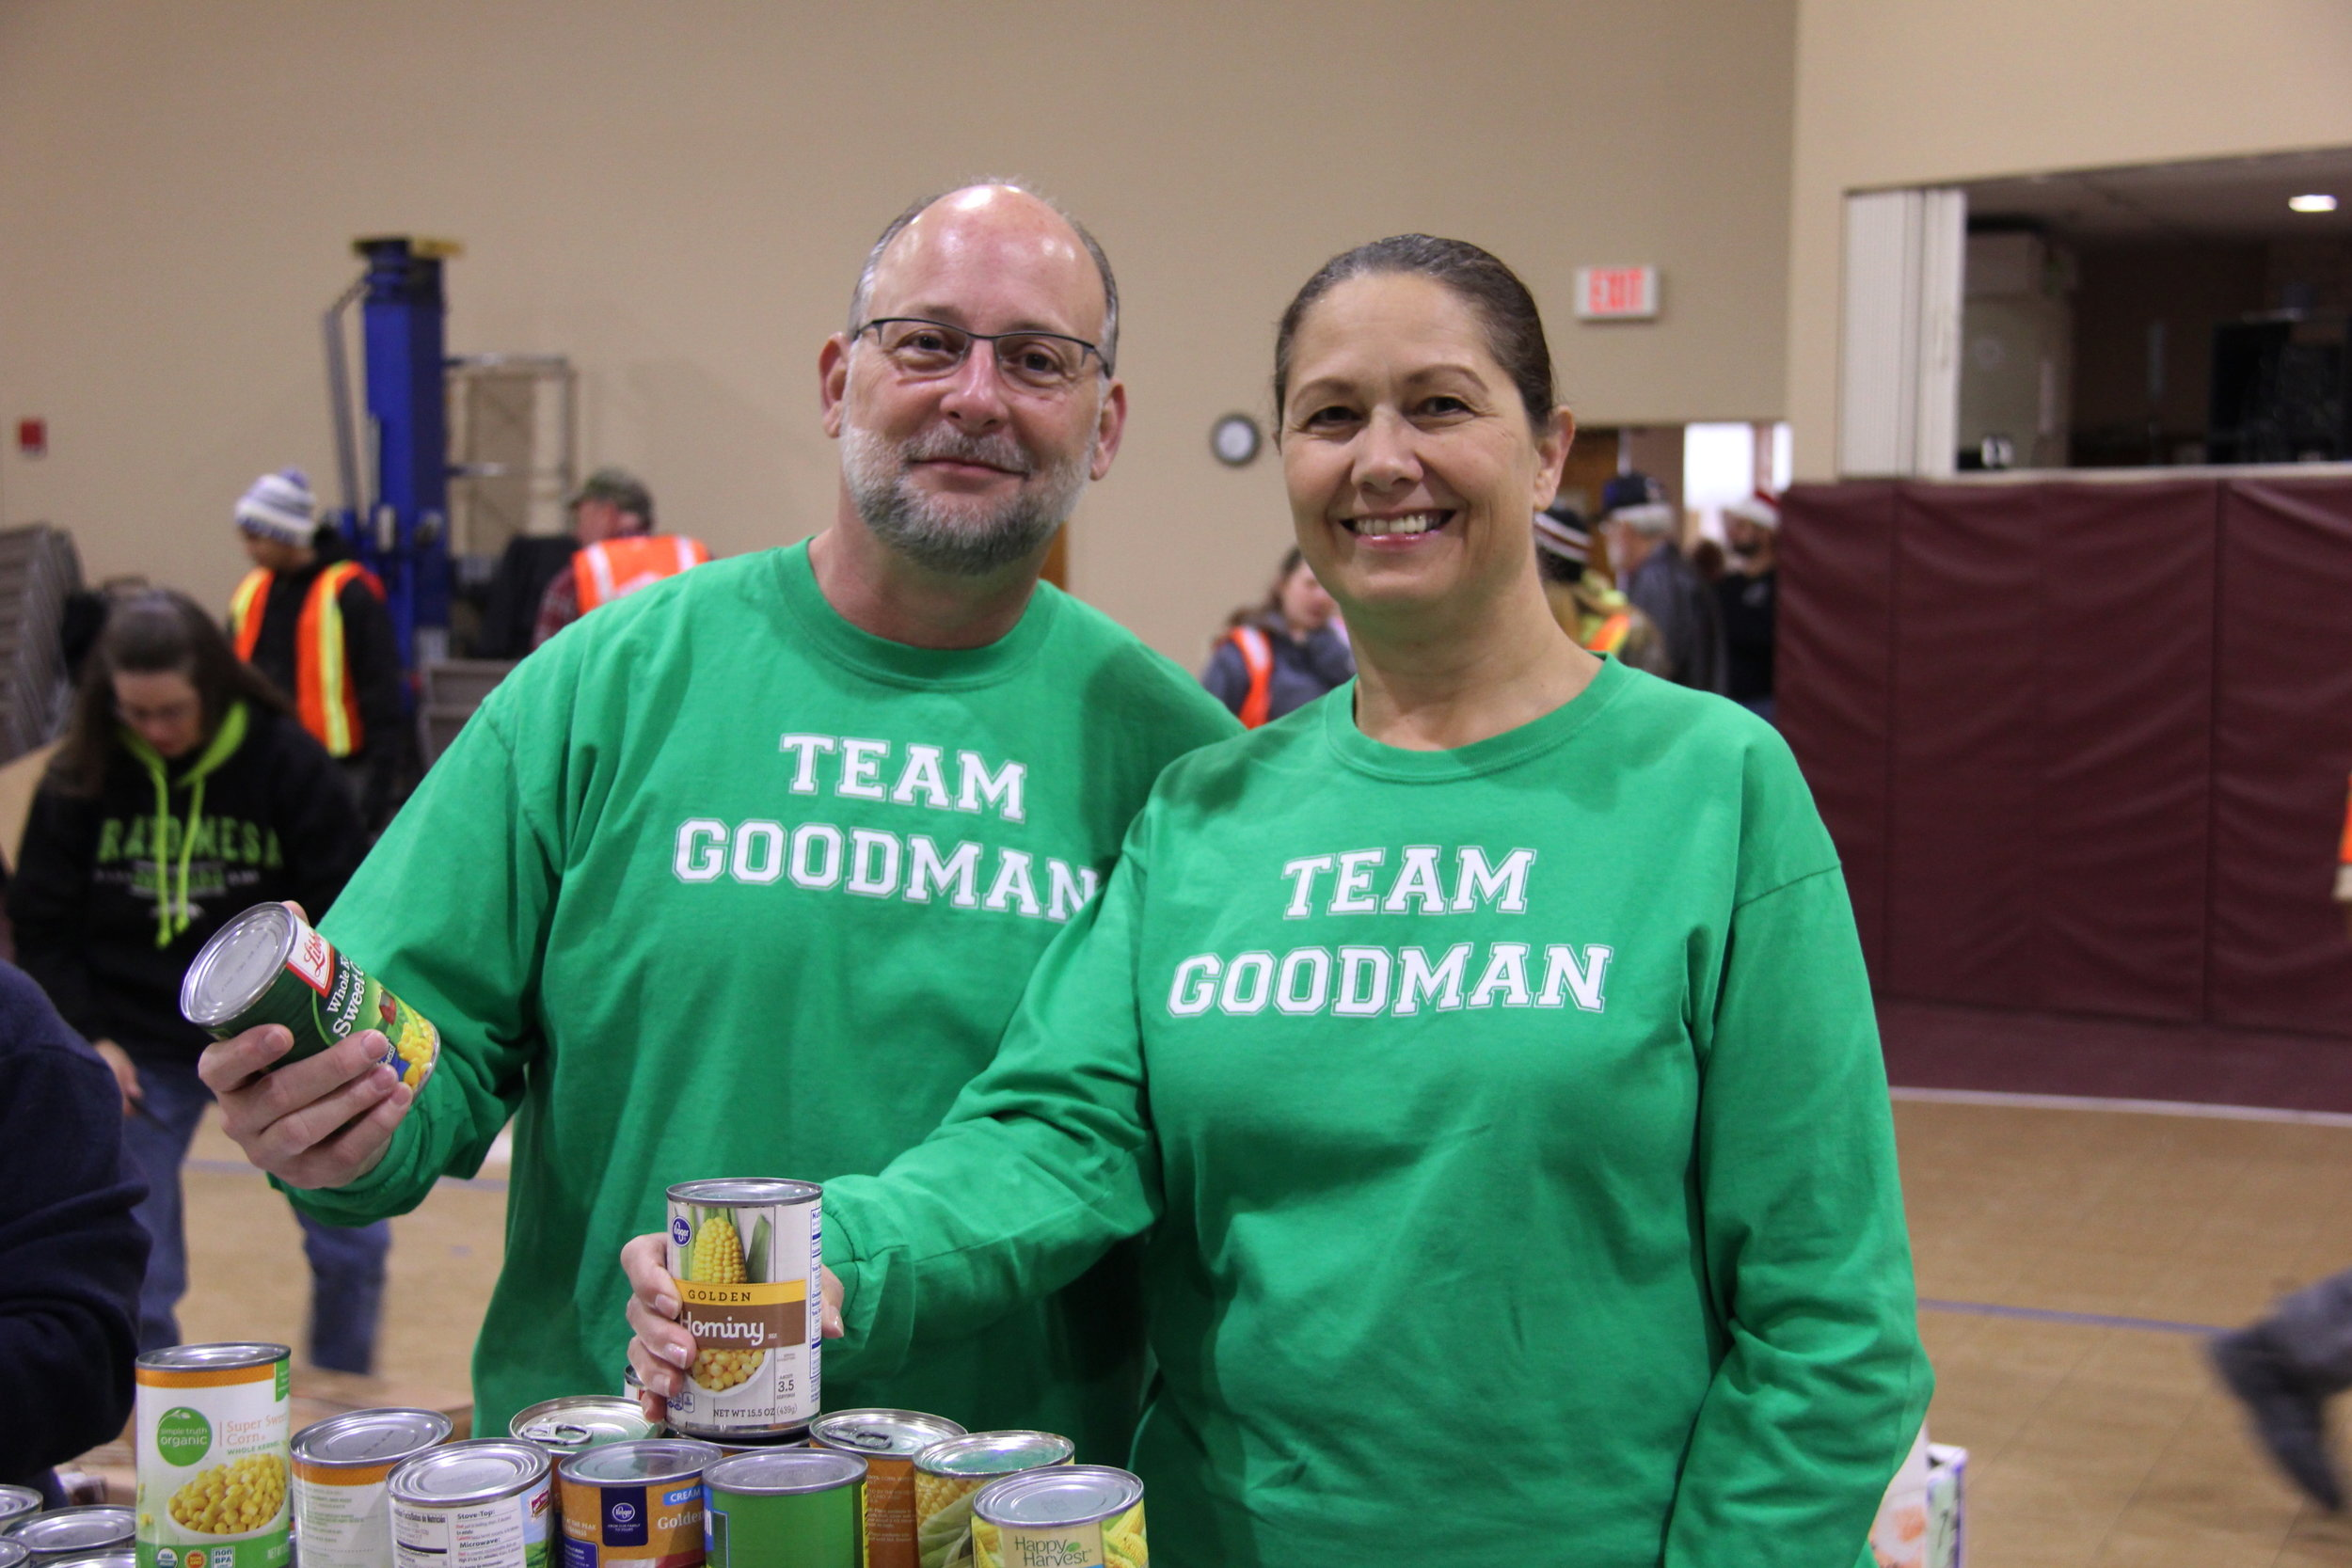 Team Goodman serving the community at the Fayette Cares holiday food distribution. Pictured are Town of Oakland Mayor Chris Goodman and wife Gena.